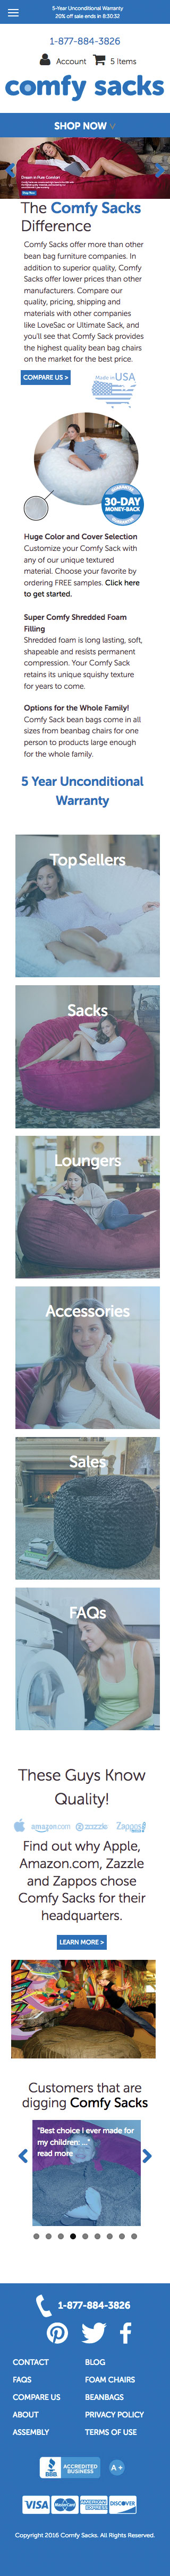 A mobile view of the entire Comfy Sacks Homepage